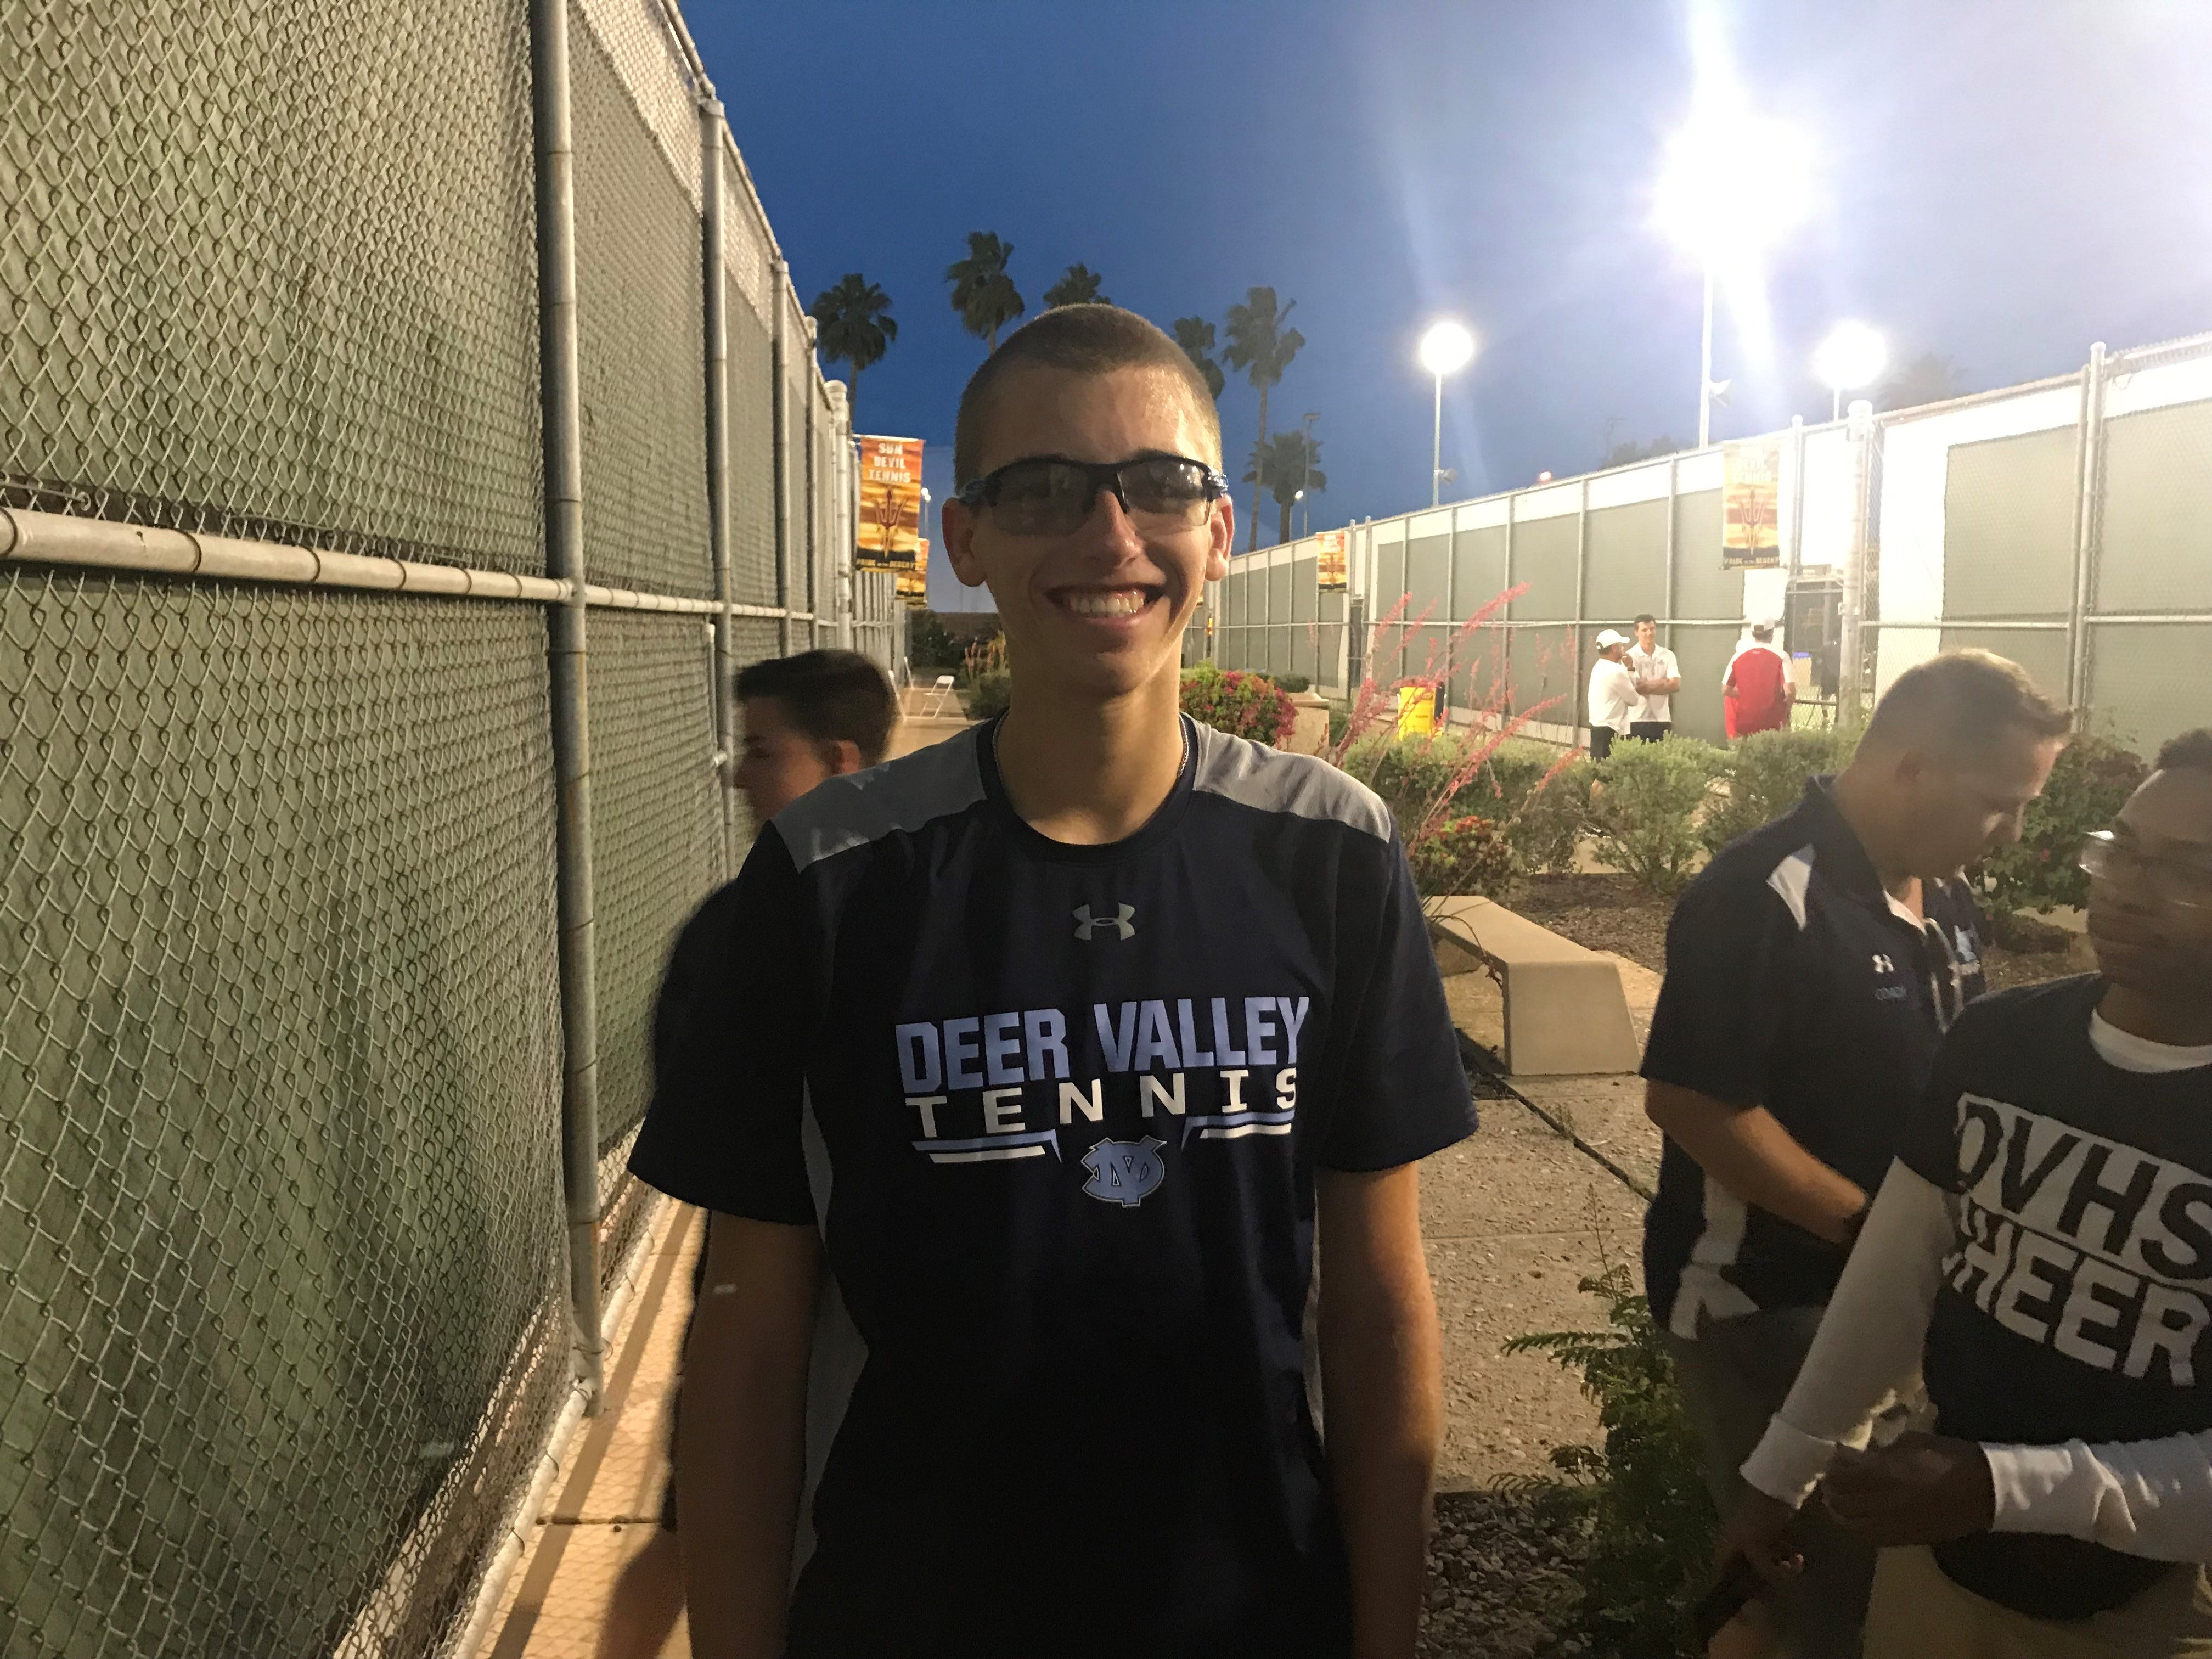 April 29, 2019; Oliver Boleratzky of Deer Valley takes in the moment after winning his second consecutive Division II single title at ASU Whiteman Tennis Center.